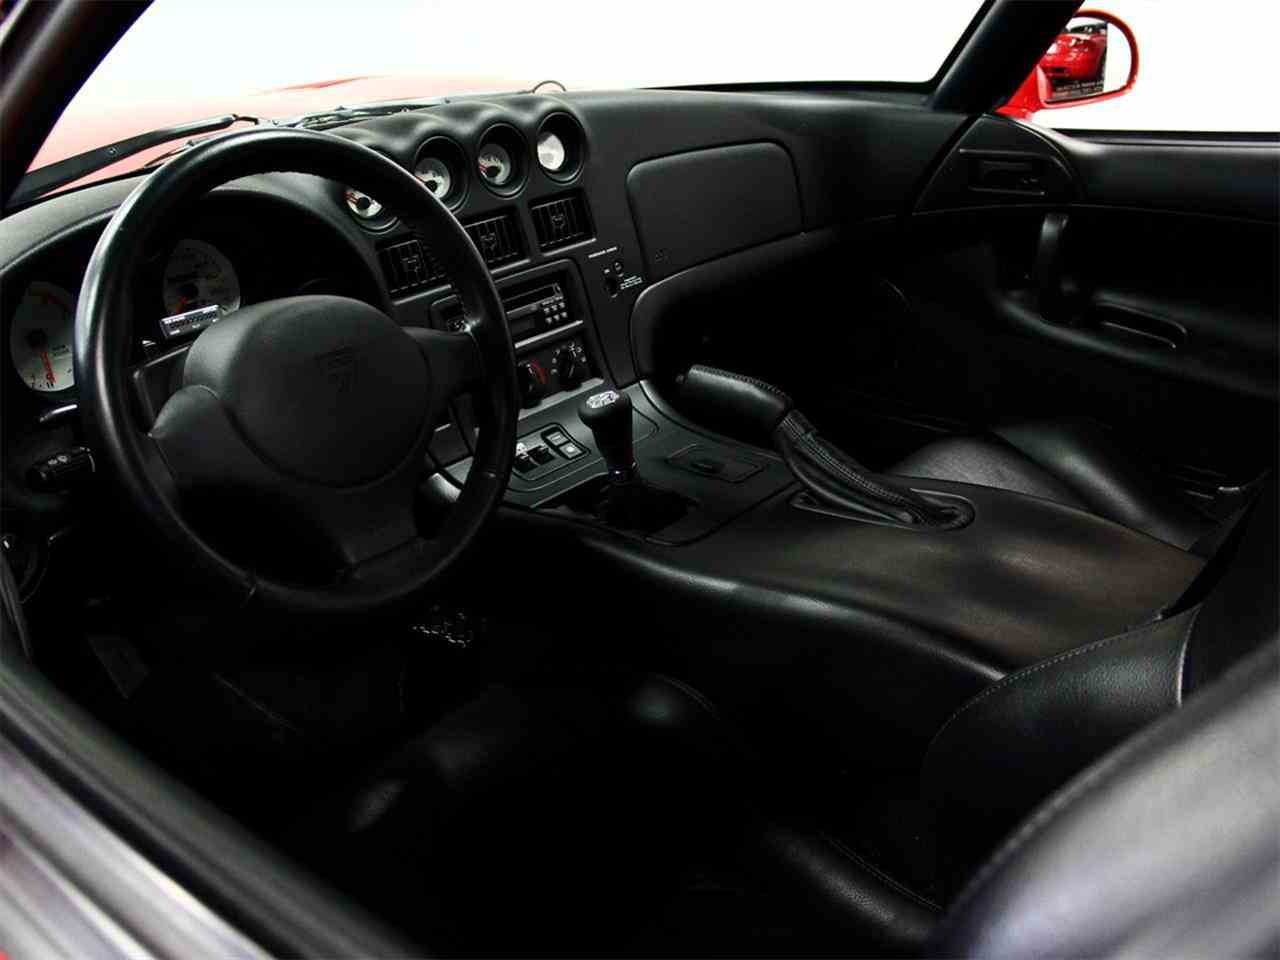 Large Picture of 1998 Dodge Viper located in Illinois Offered by a Private Seller - LSFT